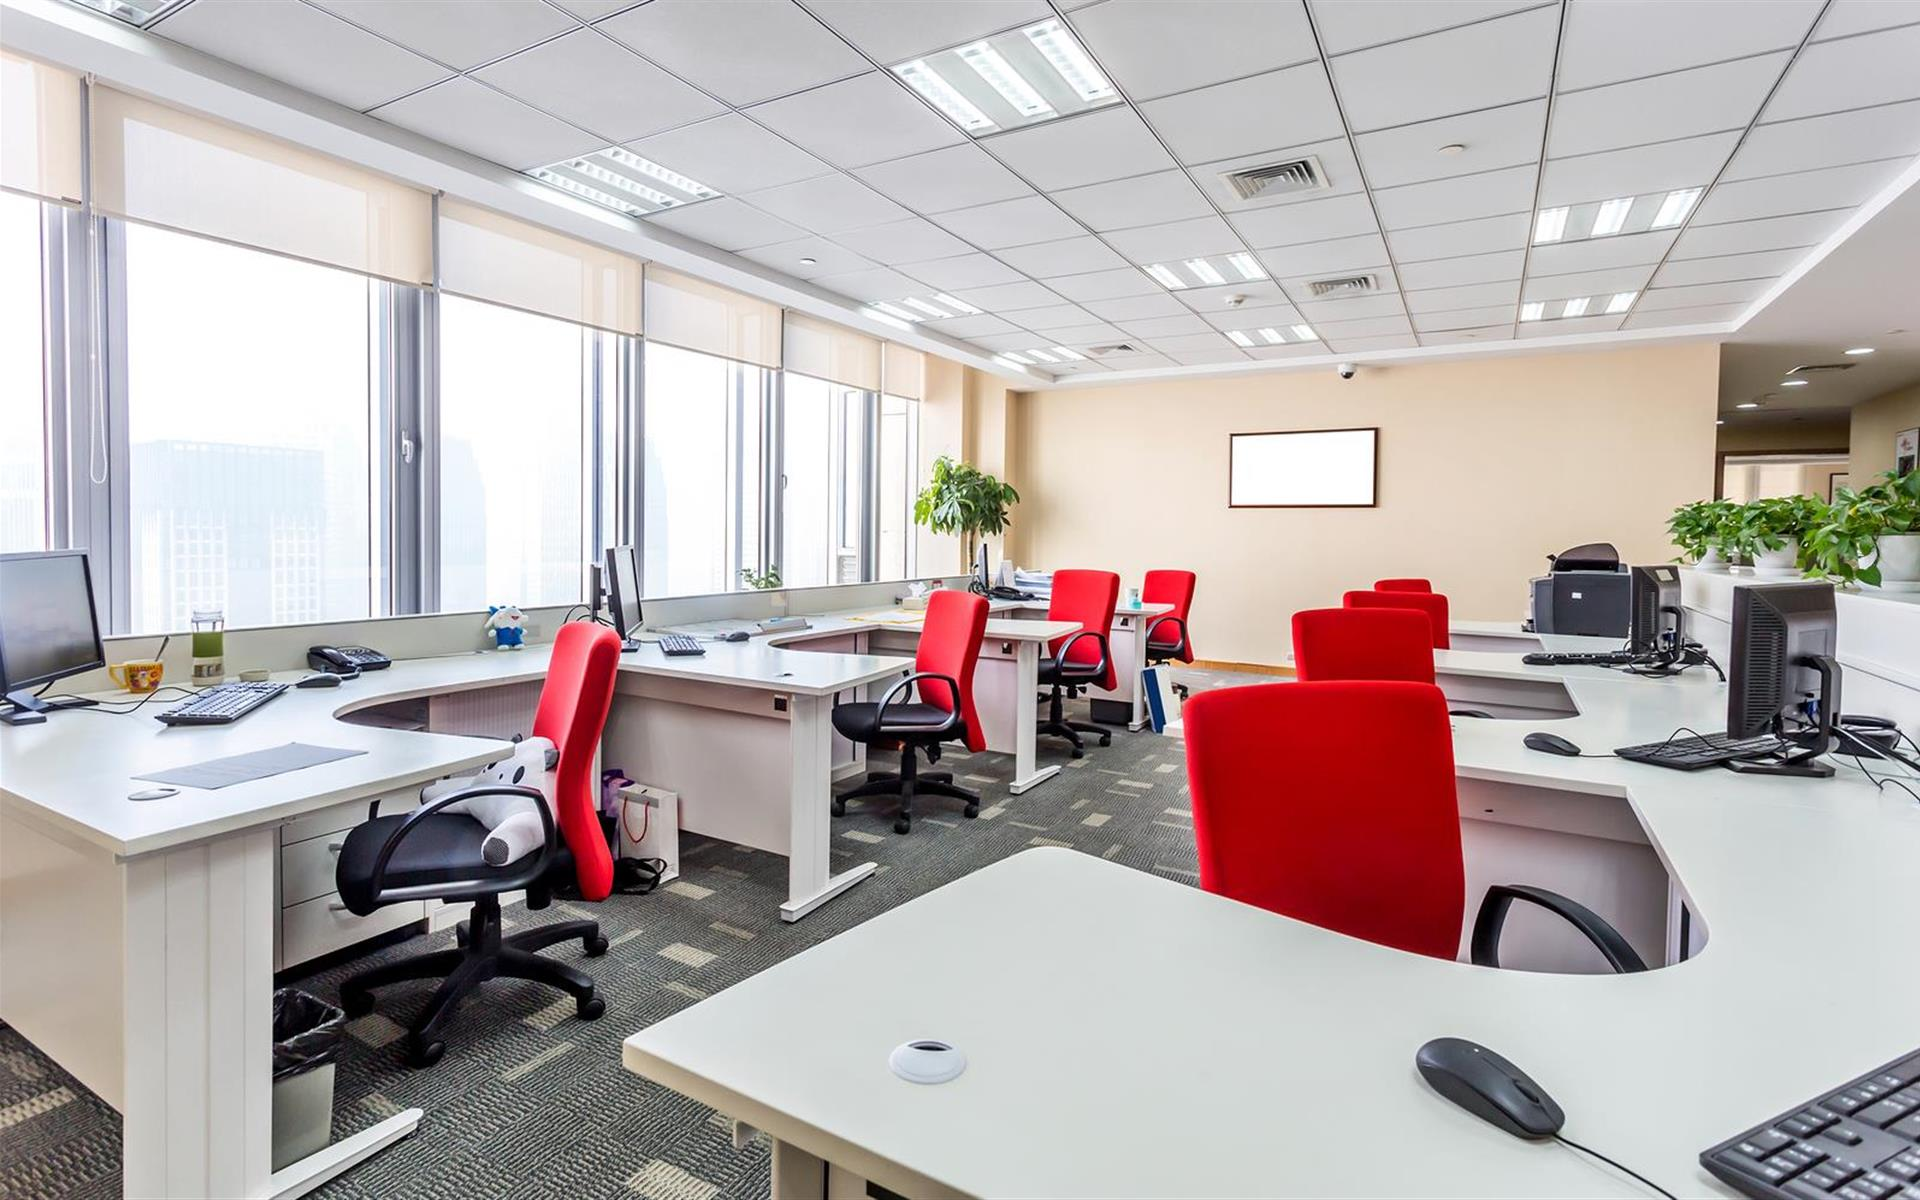 Peachtree Offices at Downtown, Inc. - Suite 300 - Team Office